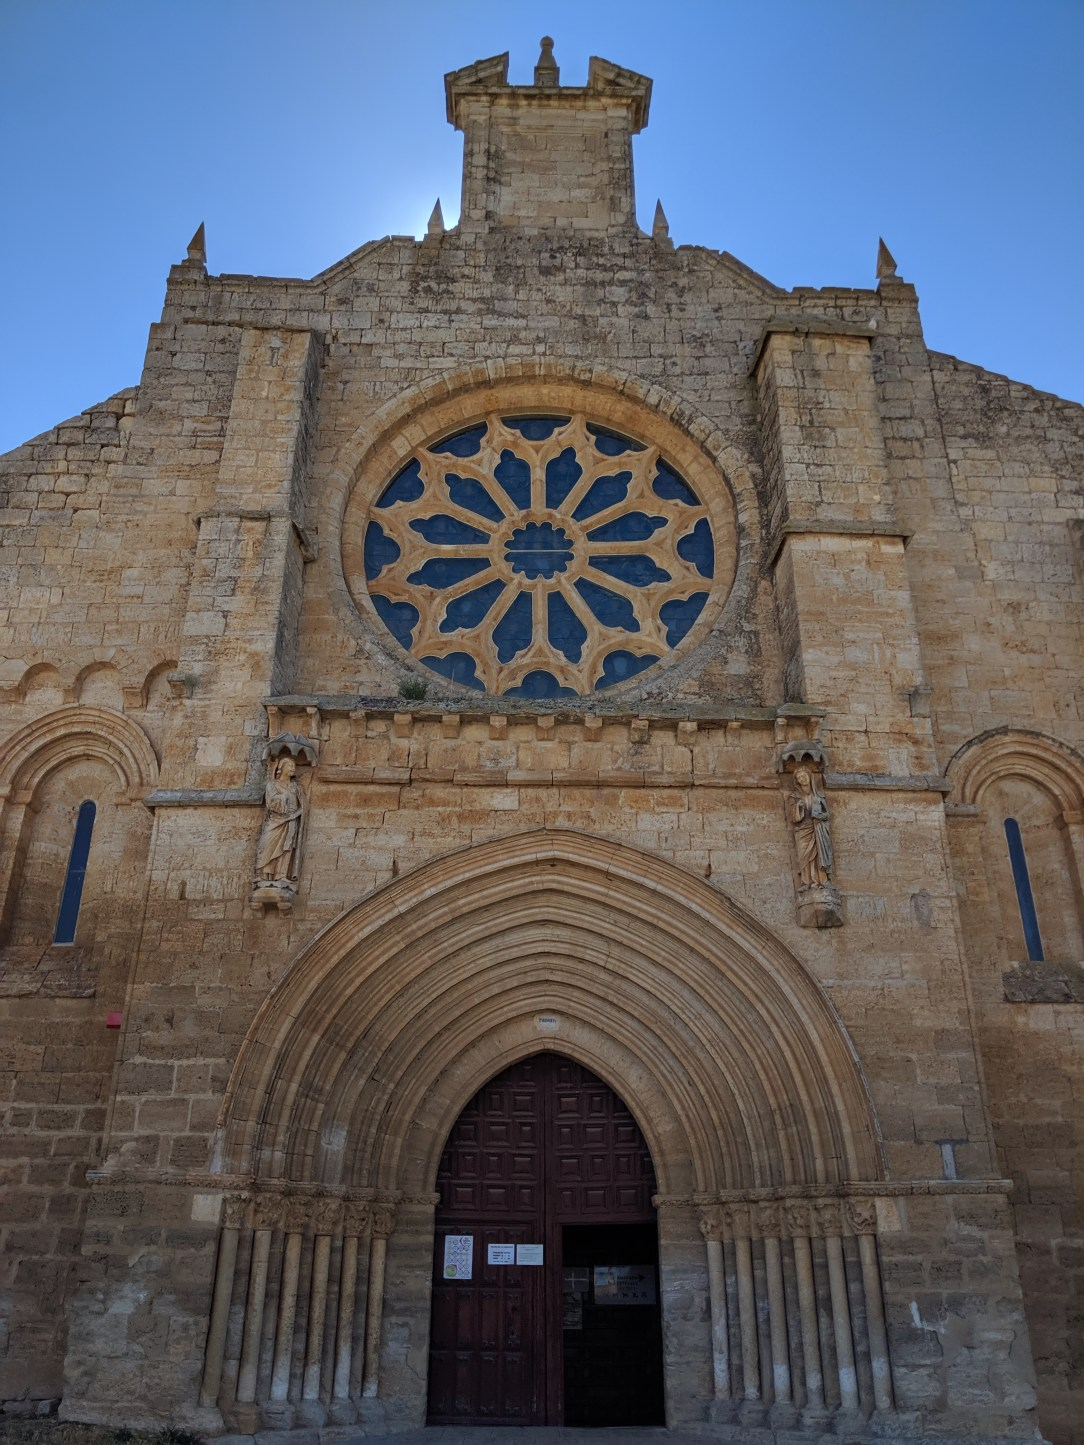 churches, Cathedrals, Spain